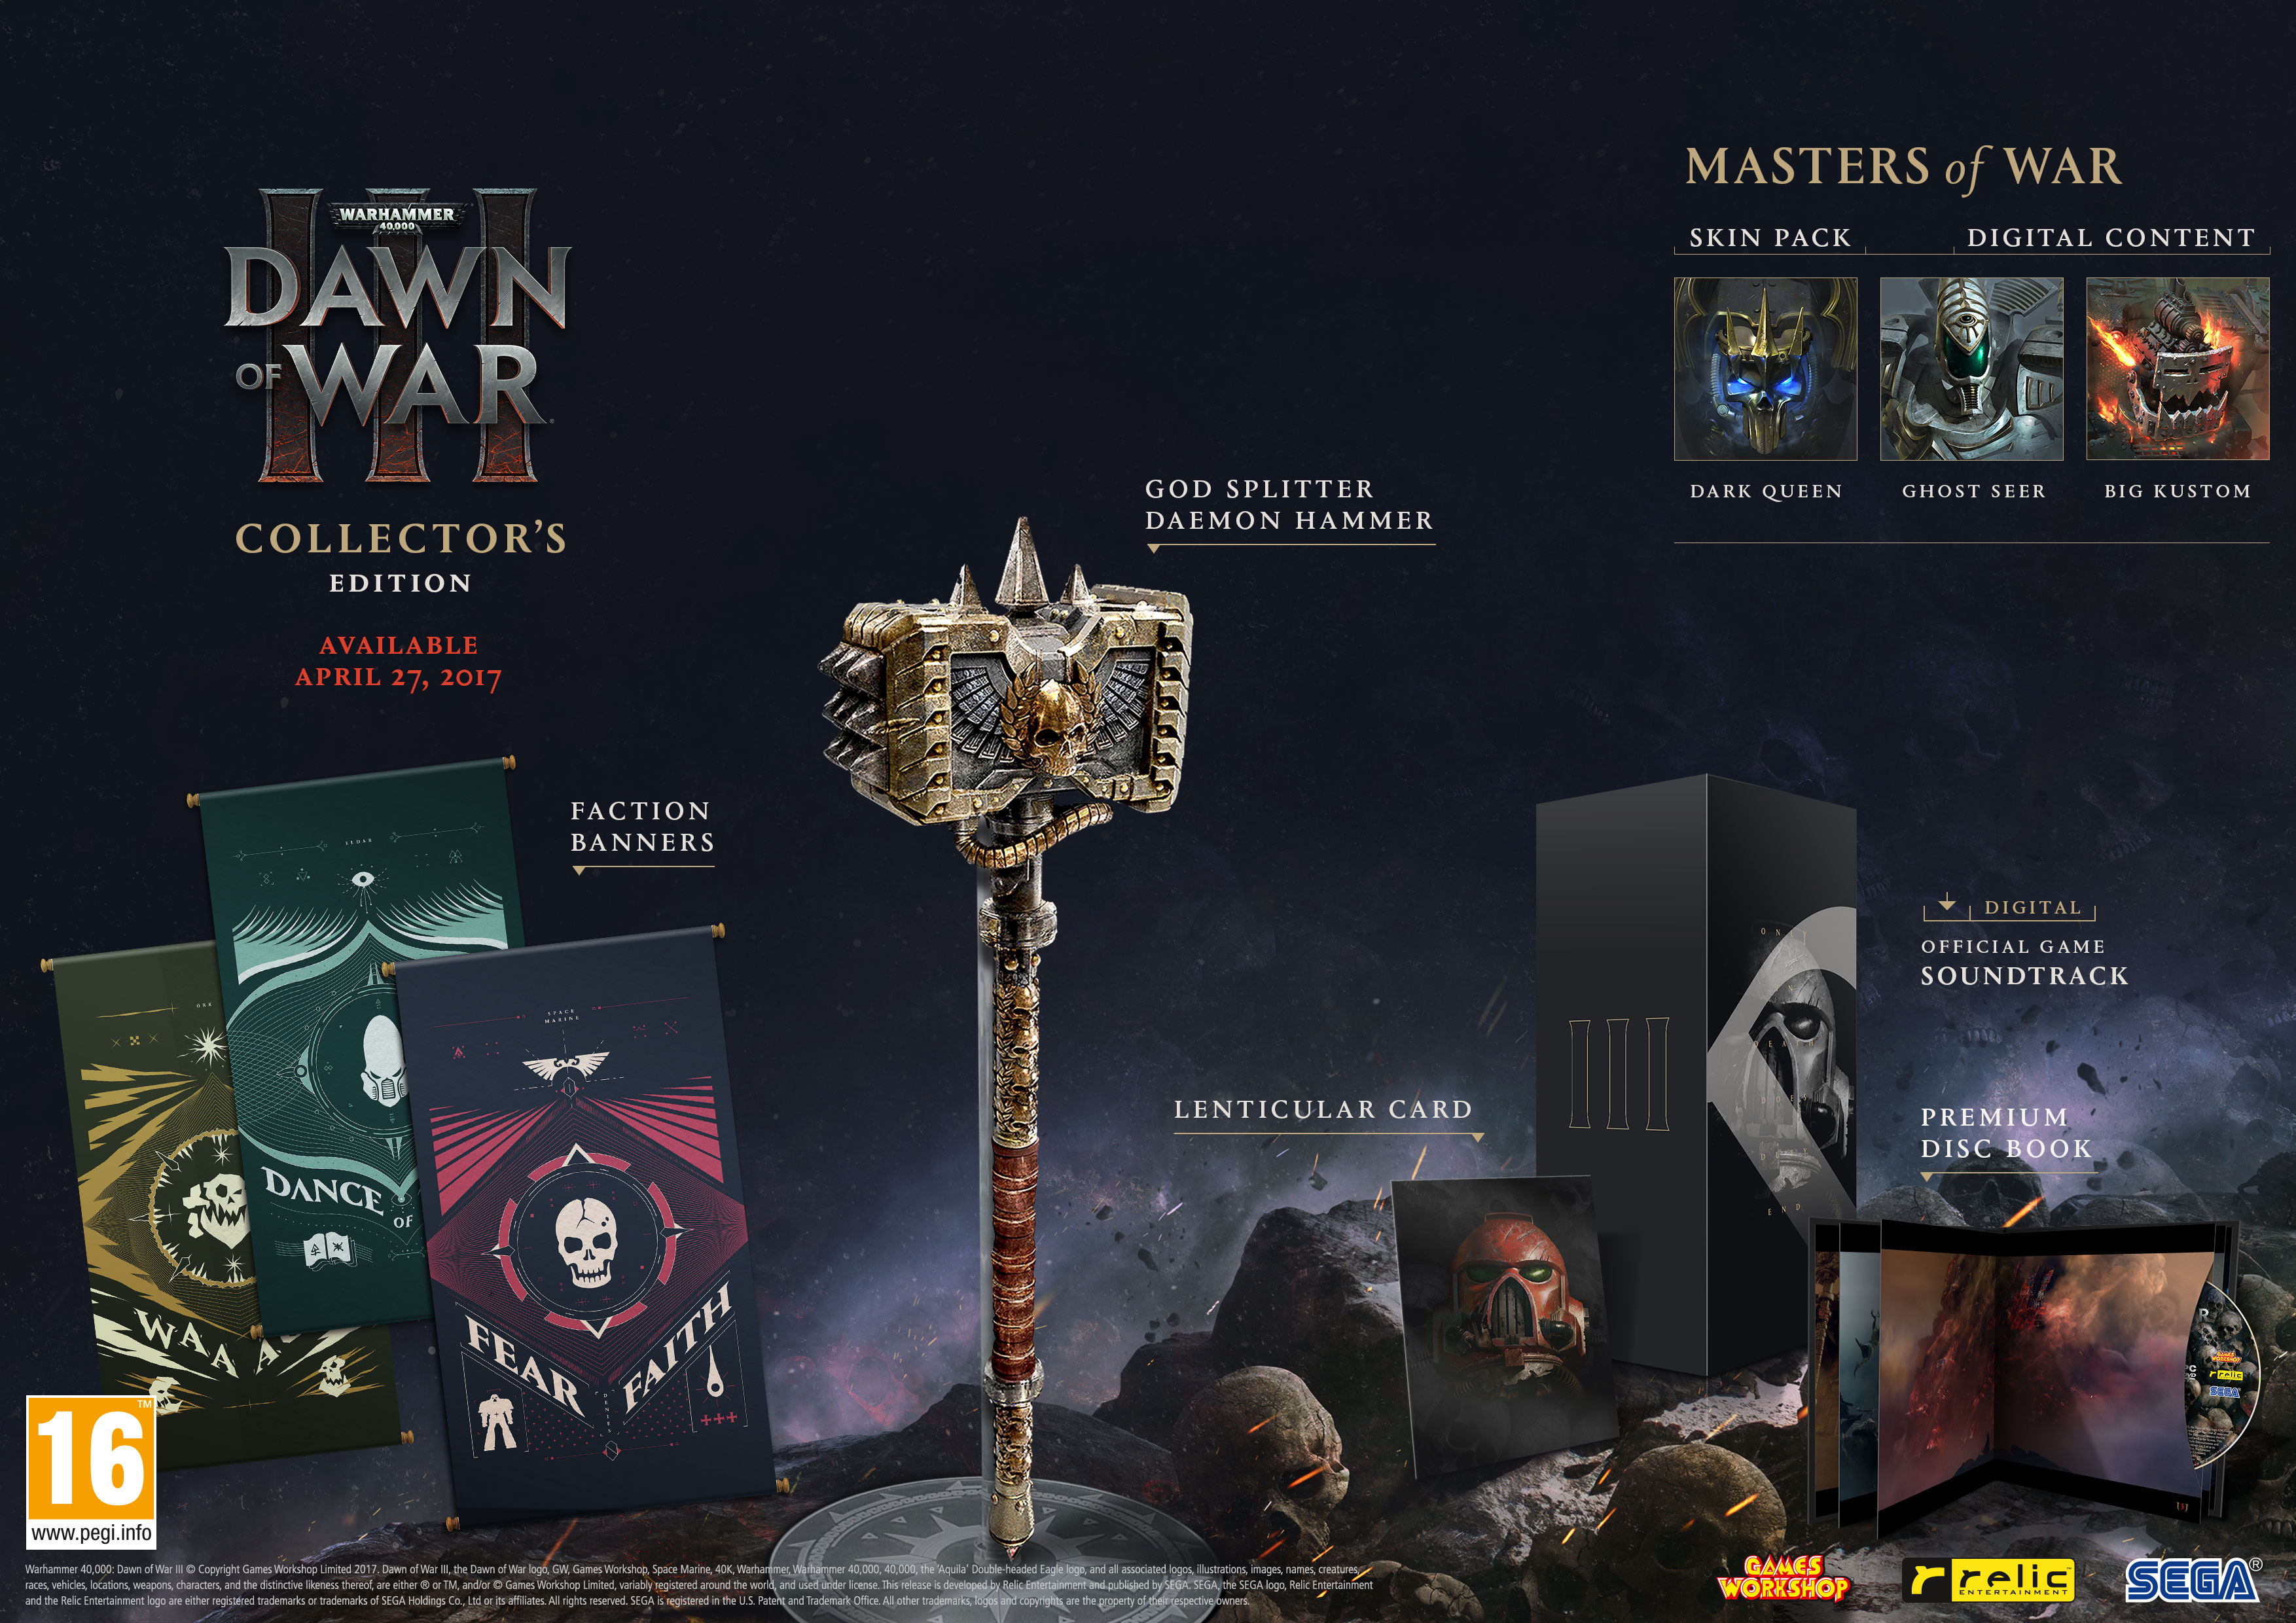 For a Collector's Edition that's actually fairly cheap